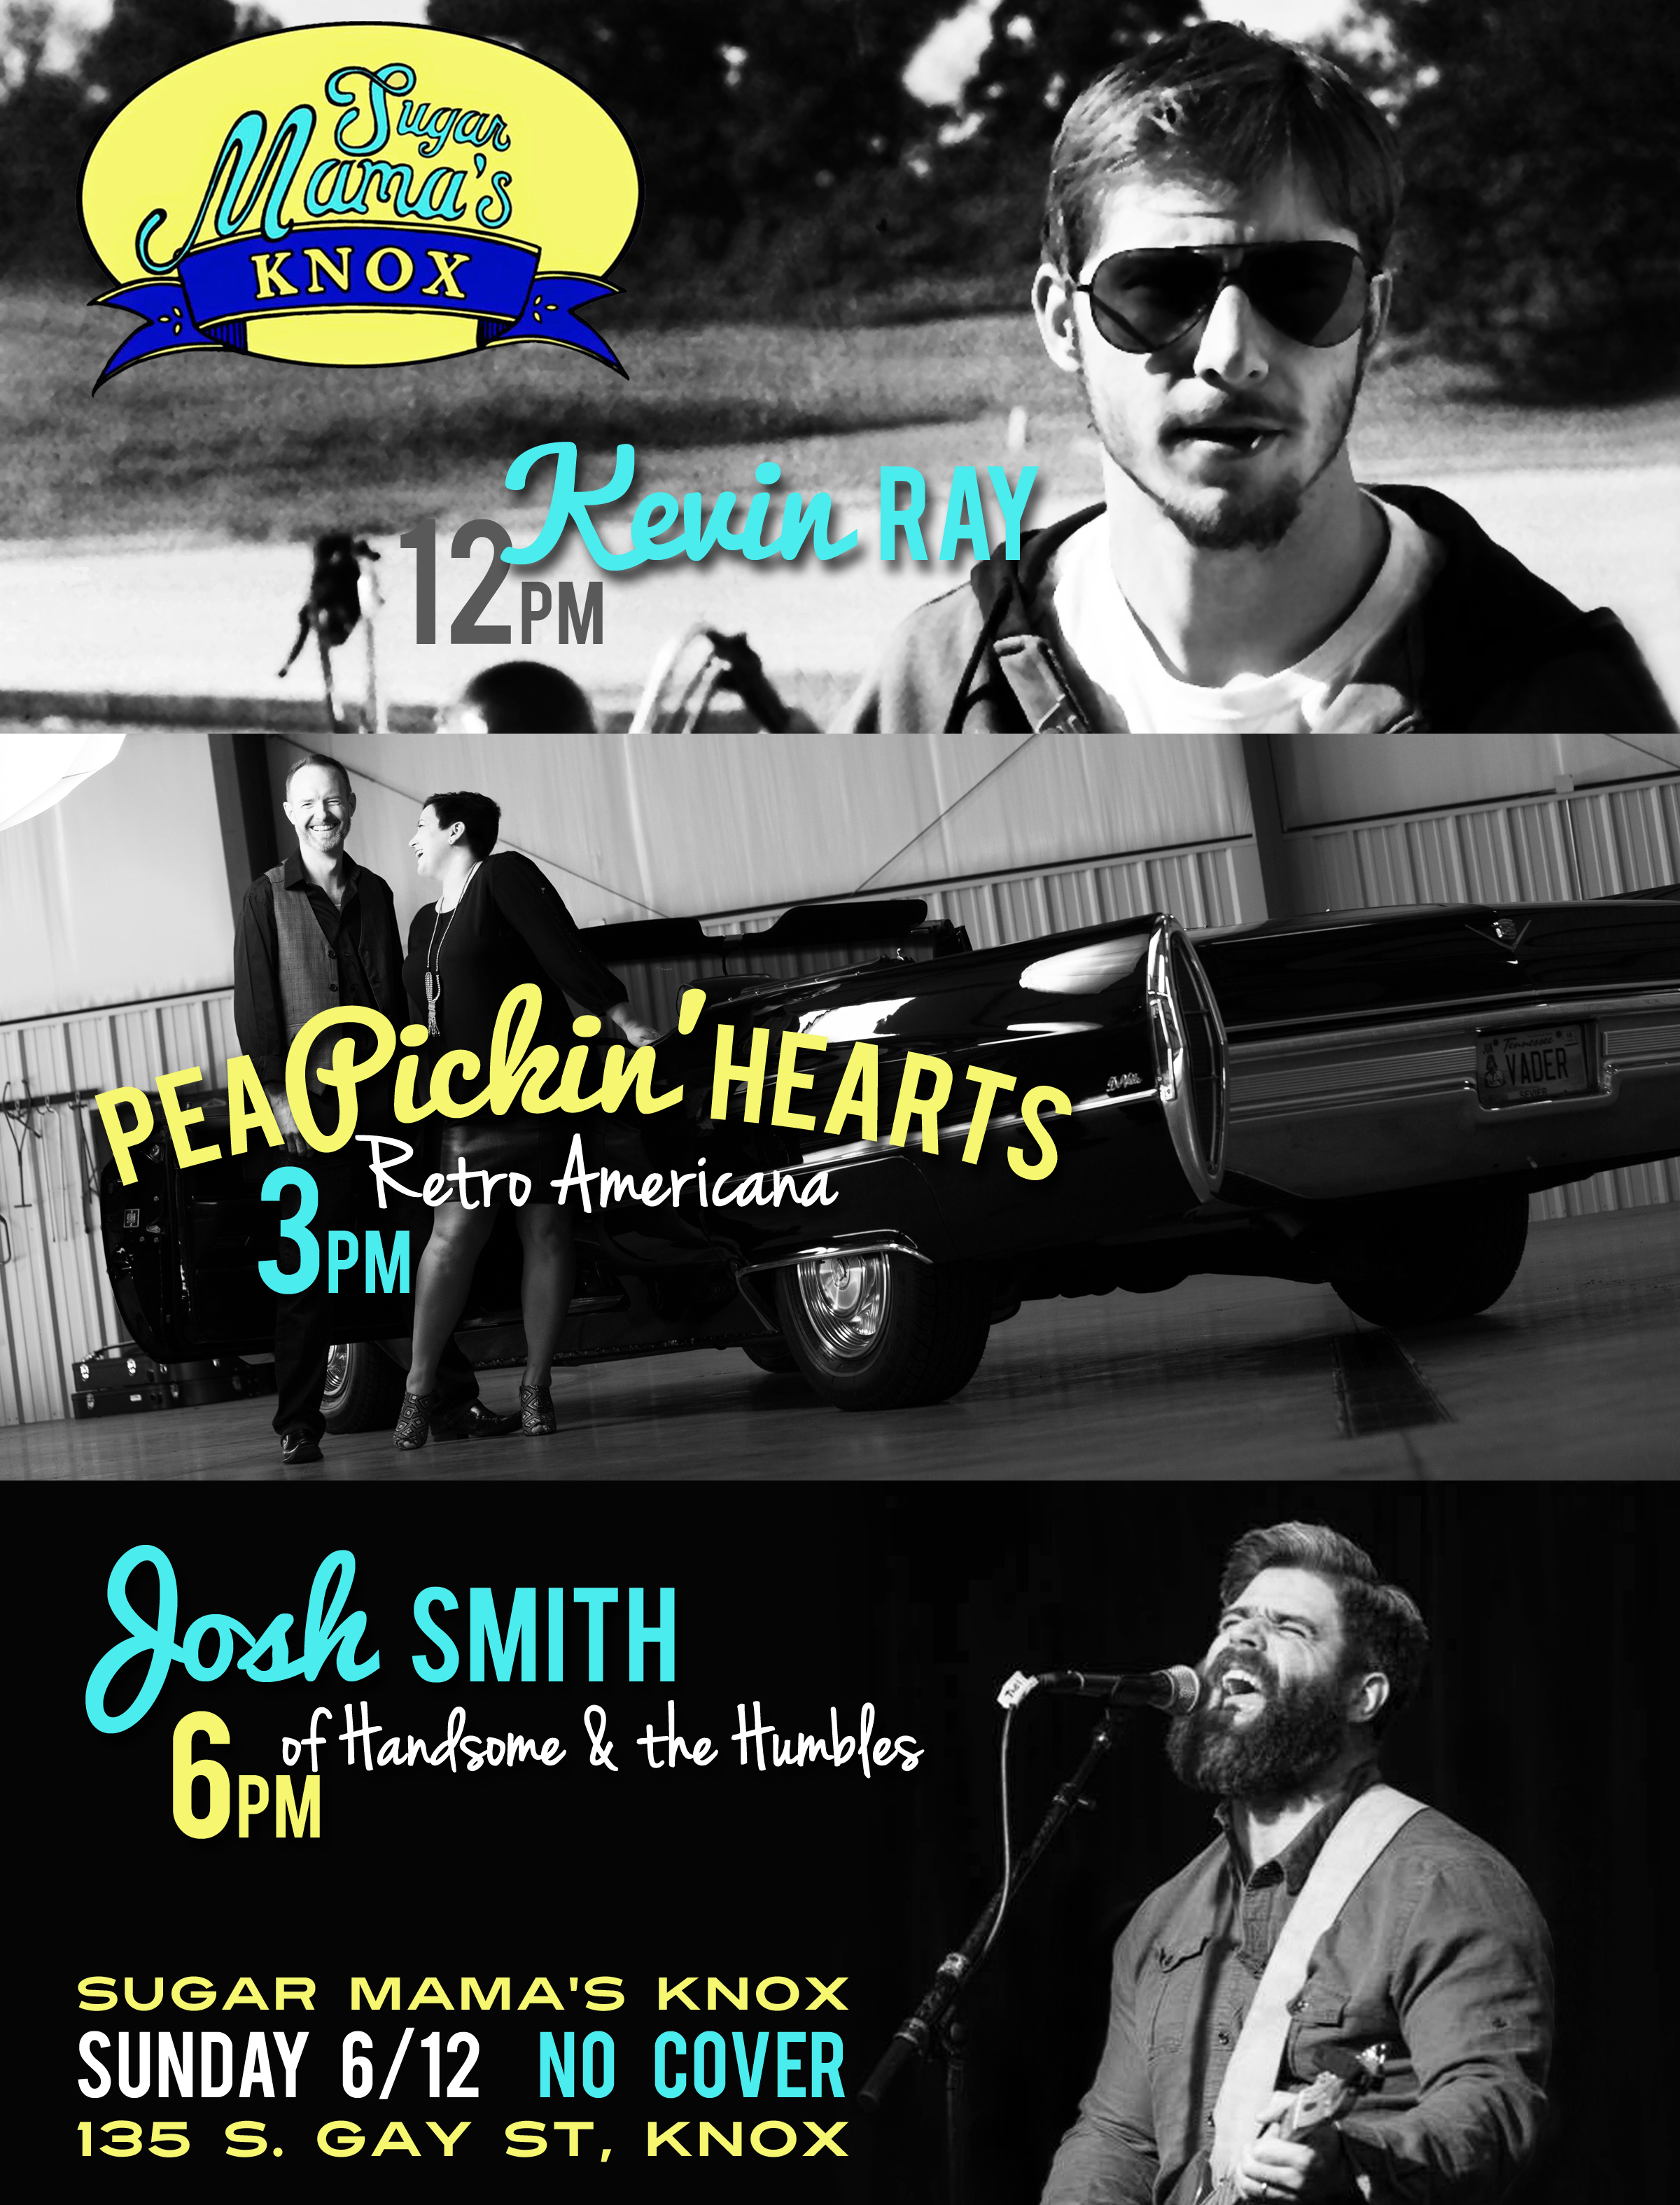 Hear the Pea Pickin' Hearts at Sugar Mama's Knox in Knoxville, TN!